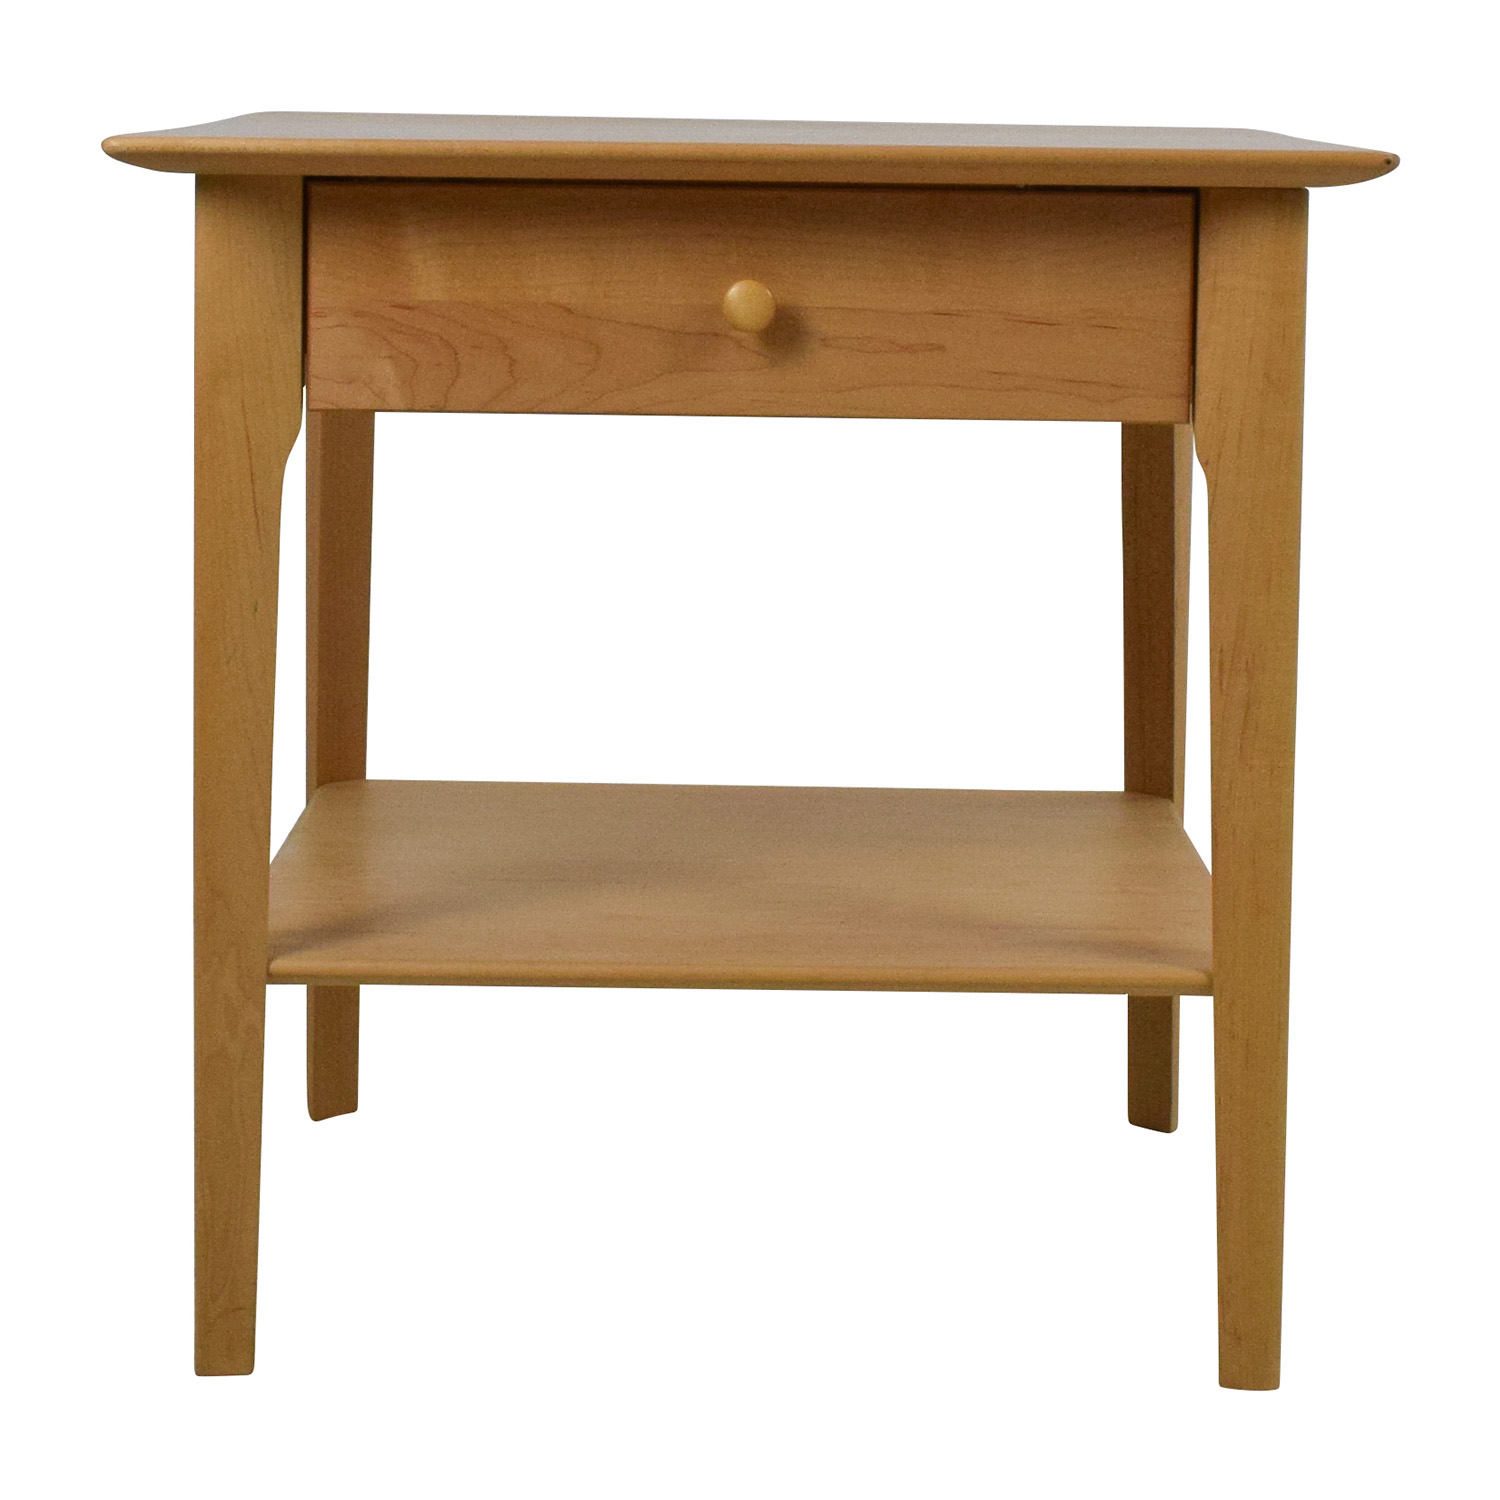 90 Off Copeland Furniture Copeland Sarah 24 Solid Maple Shaker Nightstand Tables